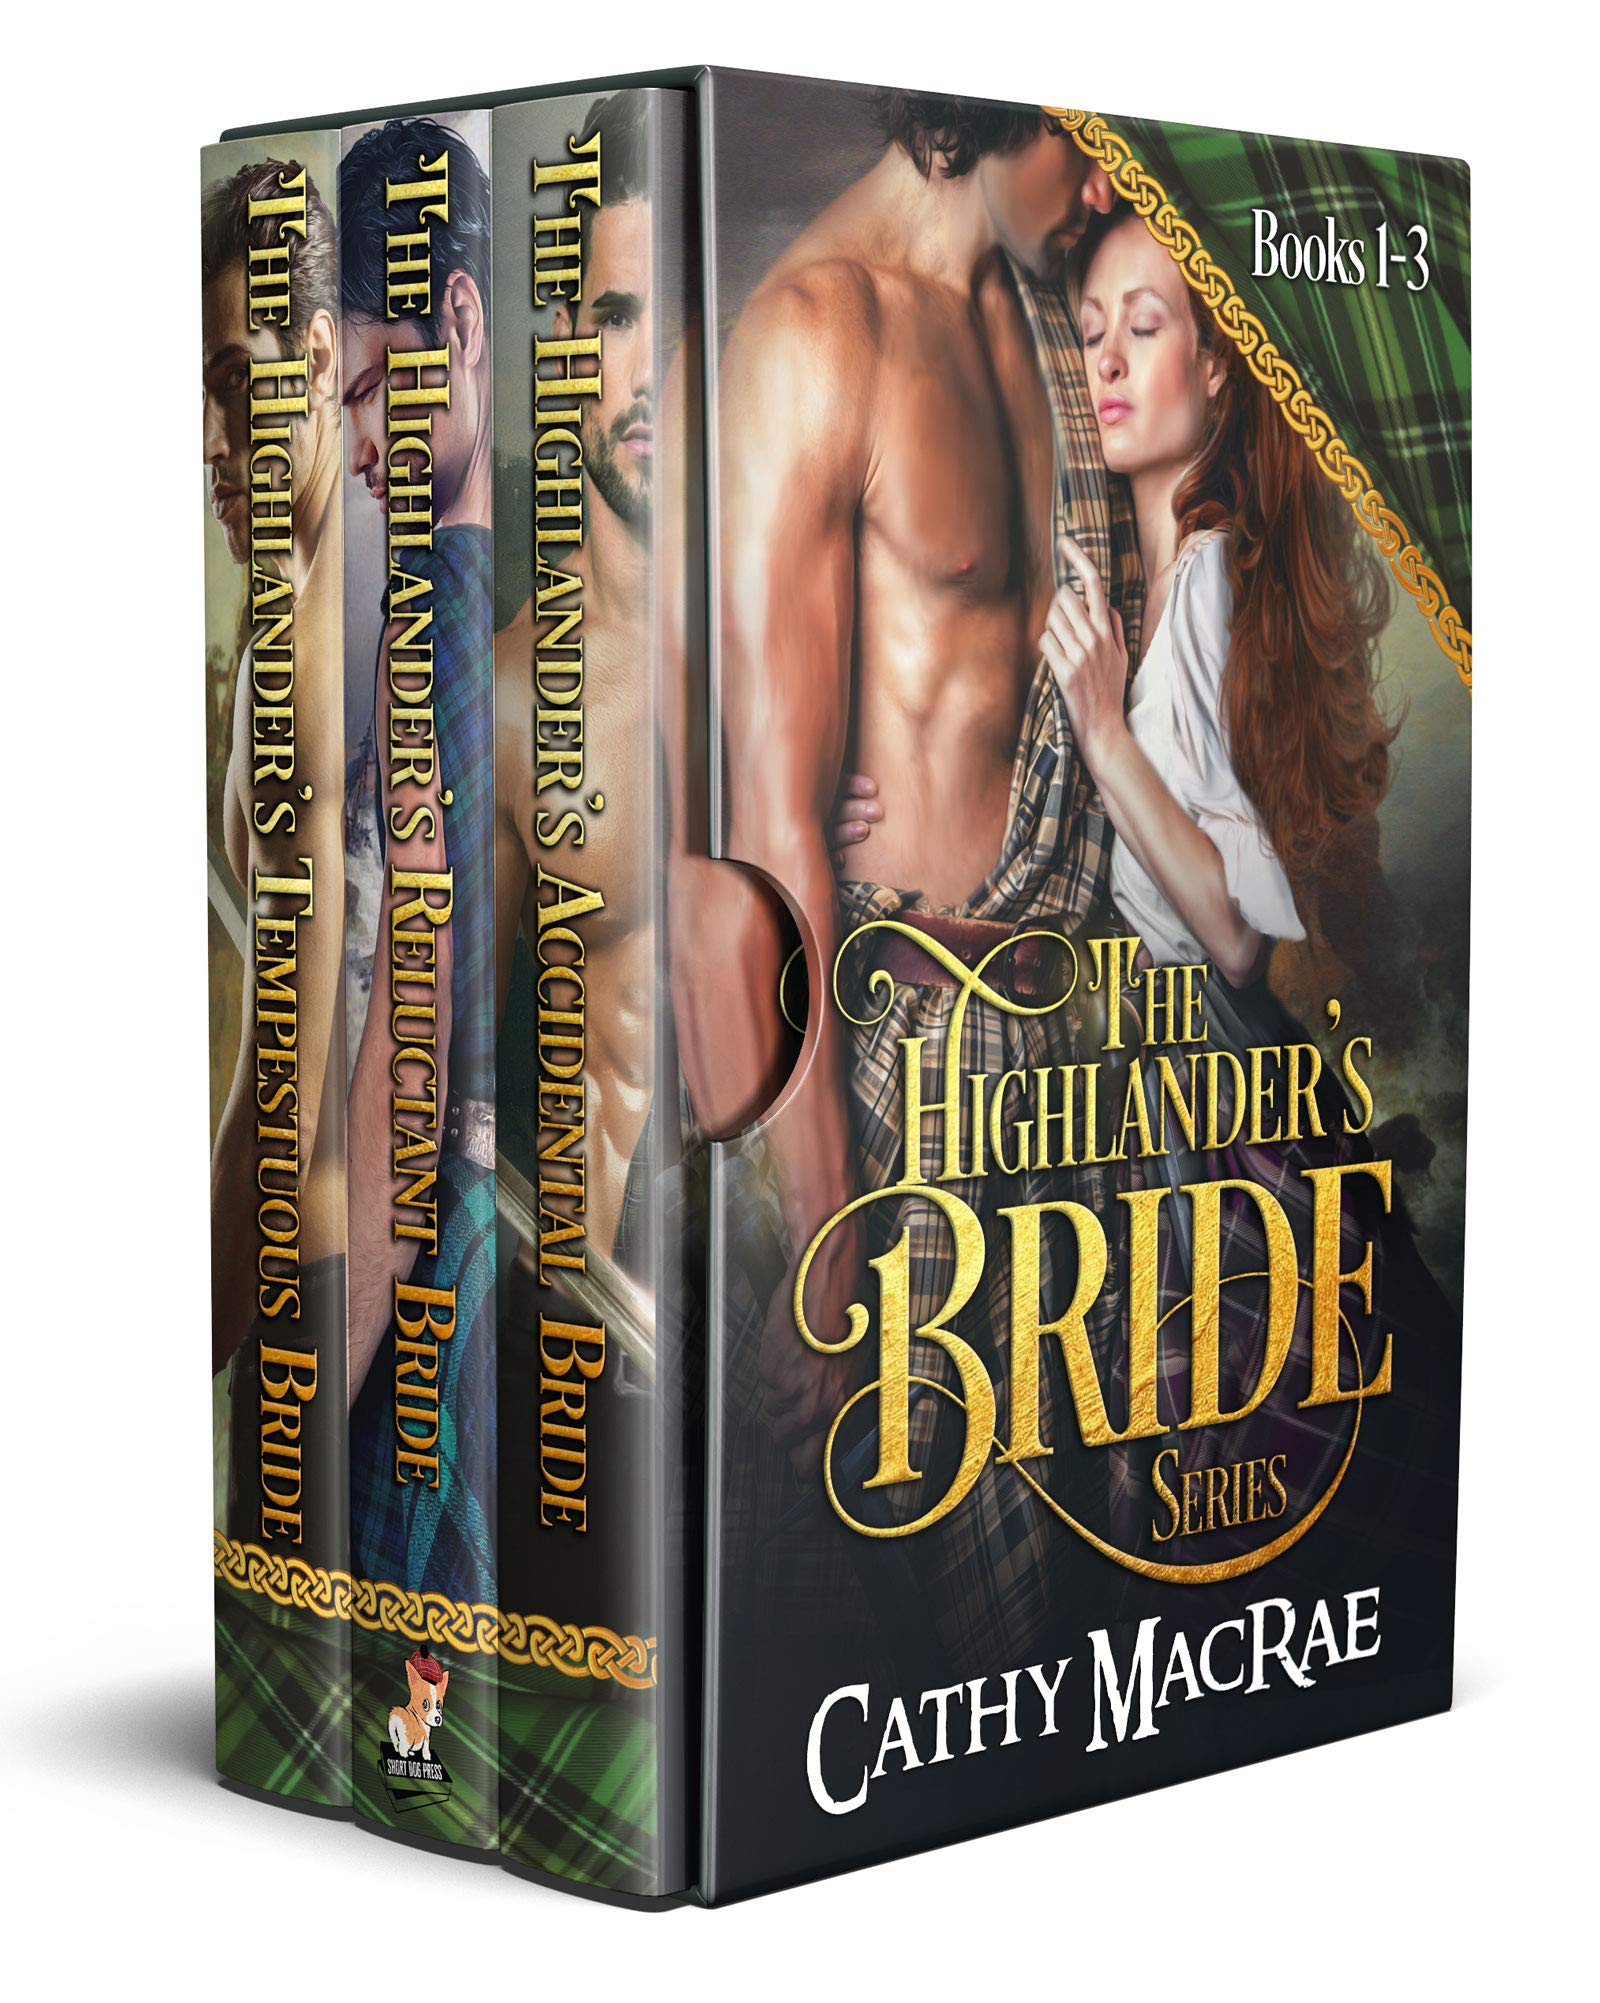 The Highlander's Bride Series: Books 1-3: A Scottish Historical Romance boxed set